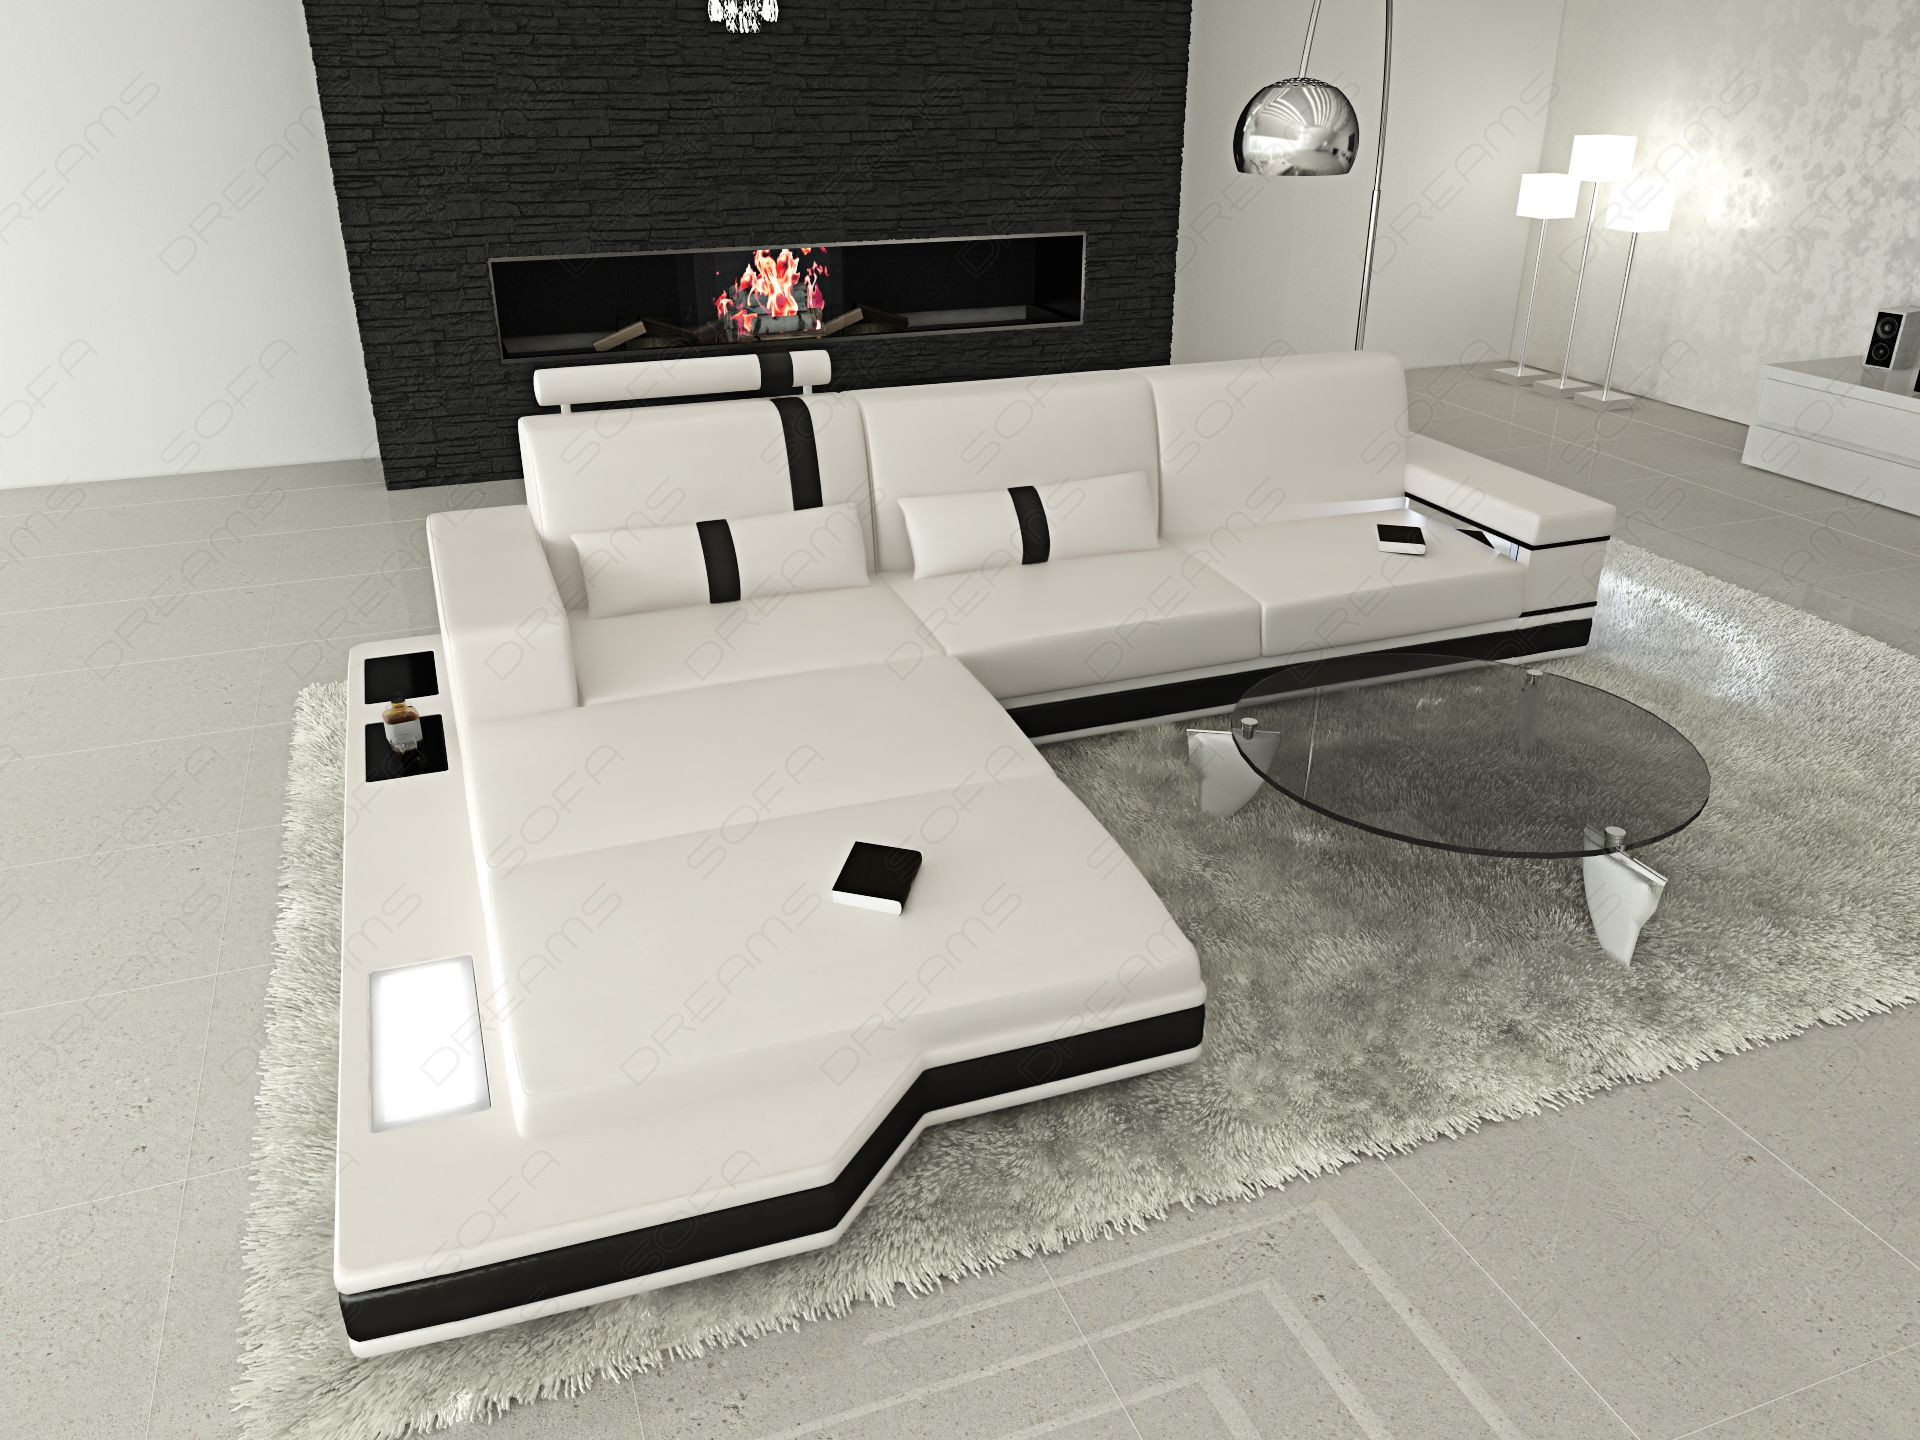 modern leather sofa los angeles with black shelves - white-black